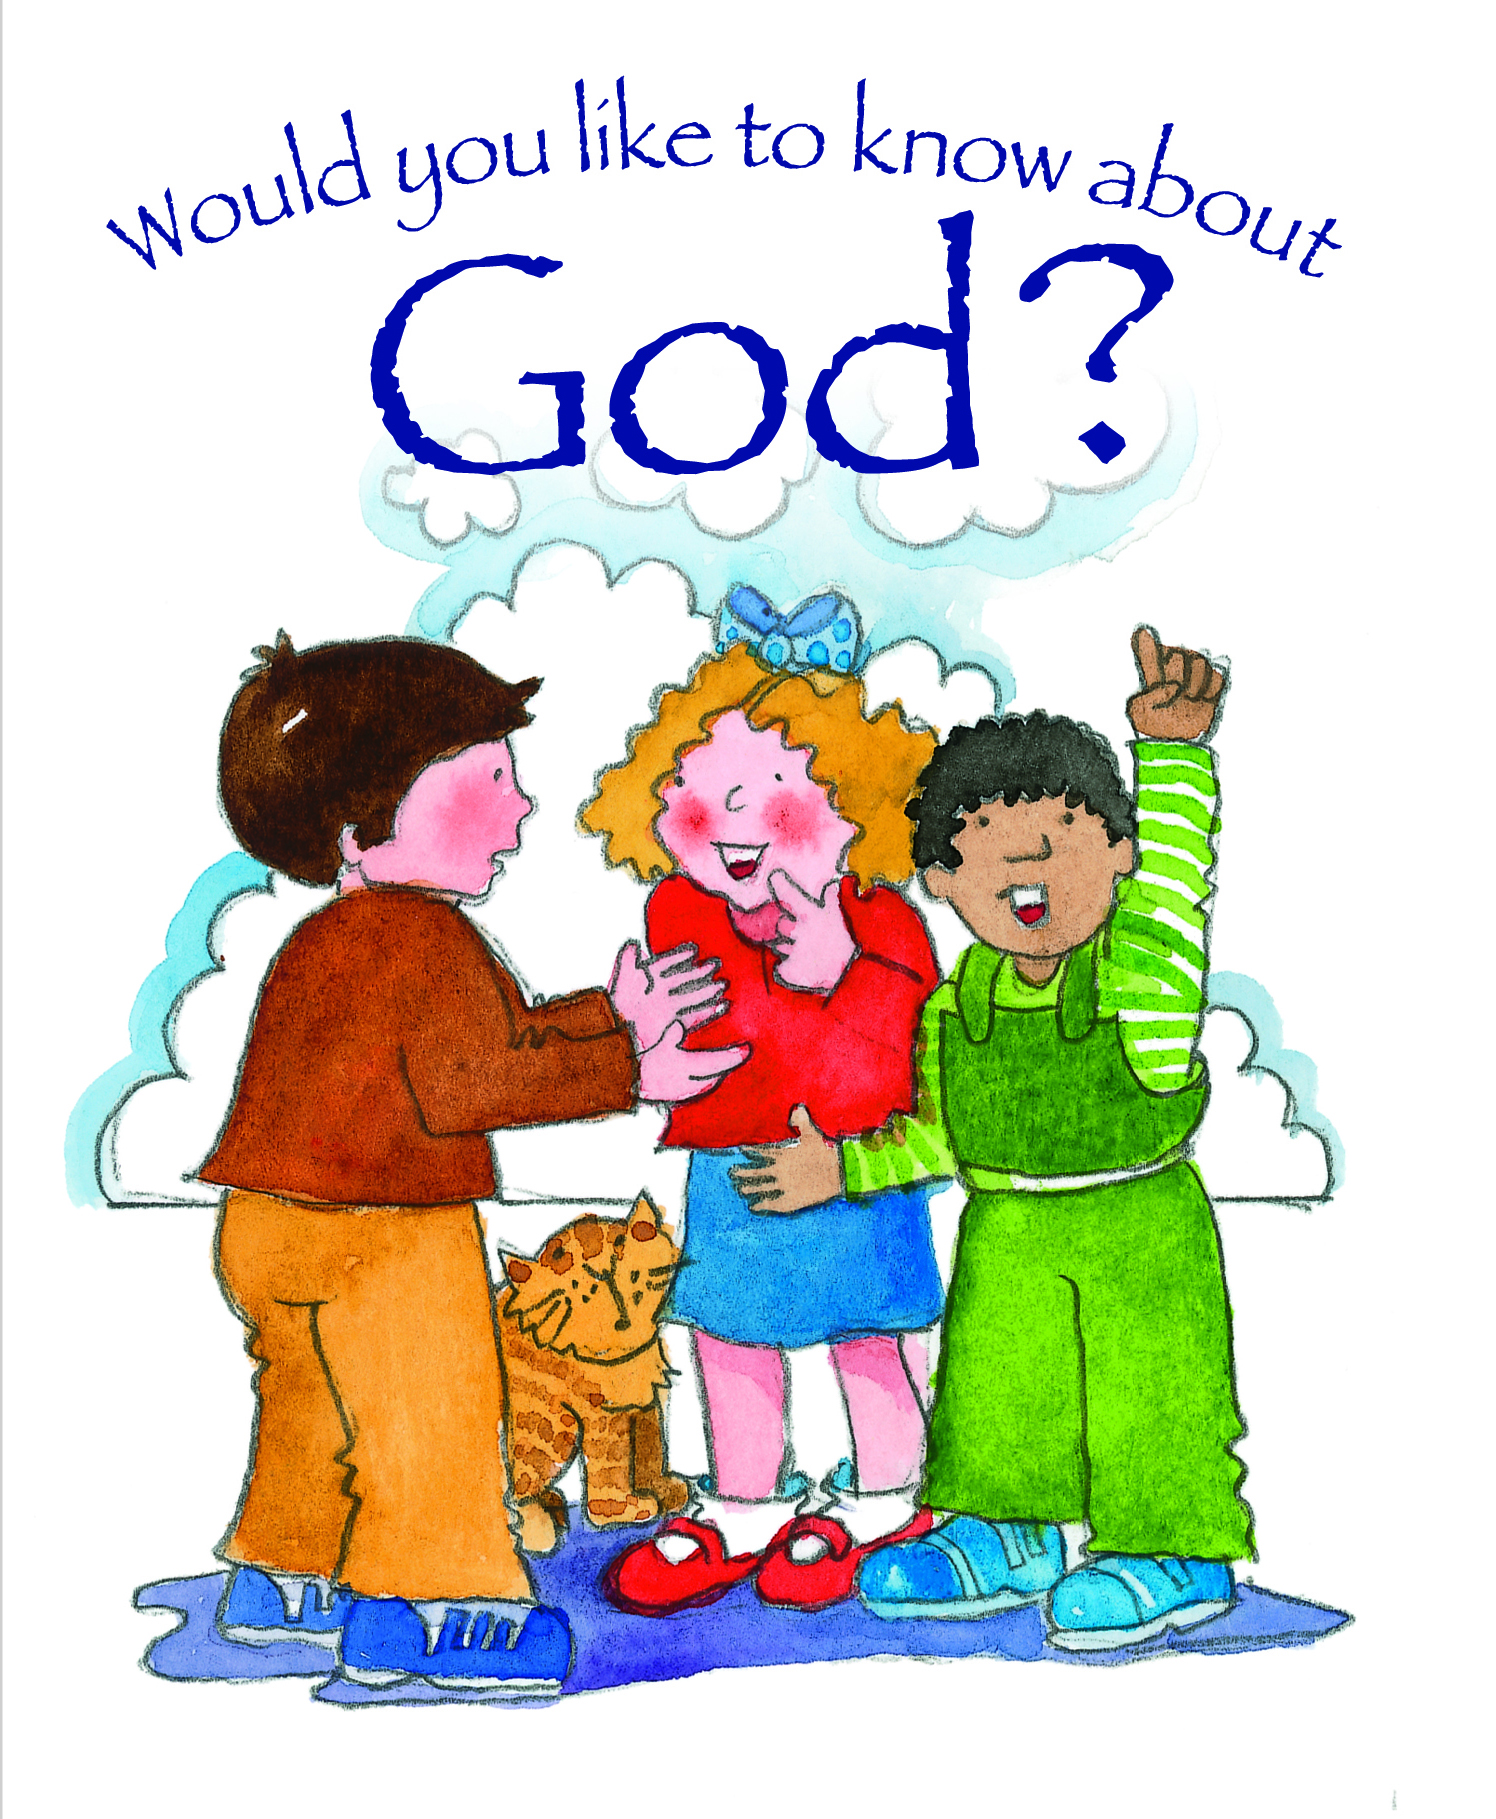 Would You Like to Know About God?